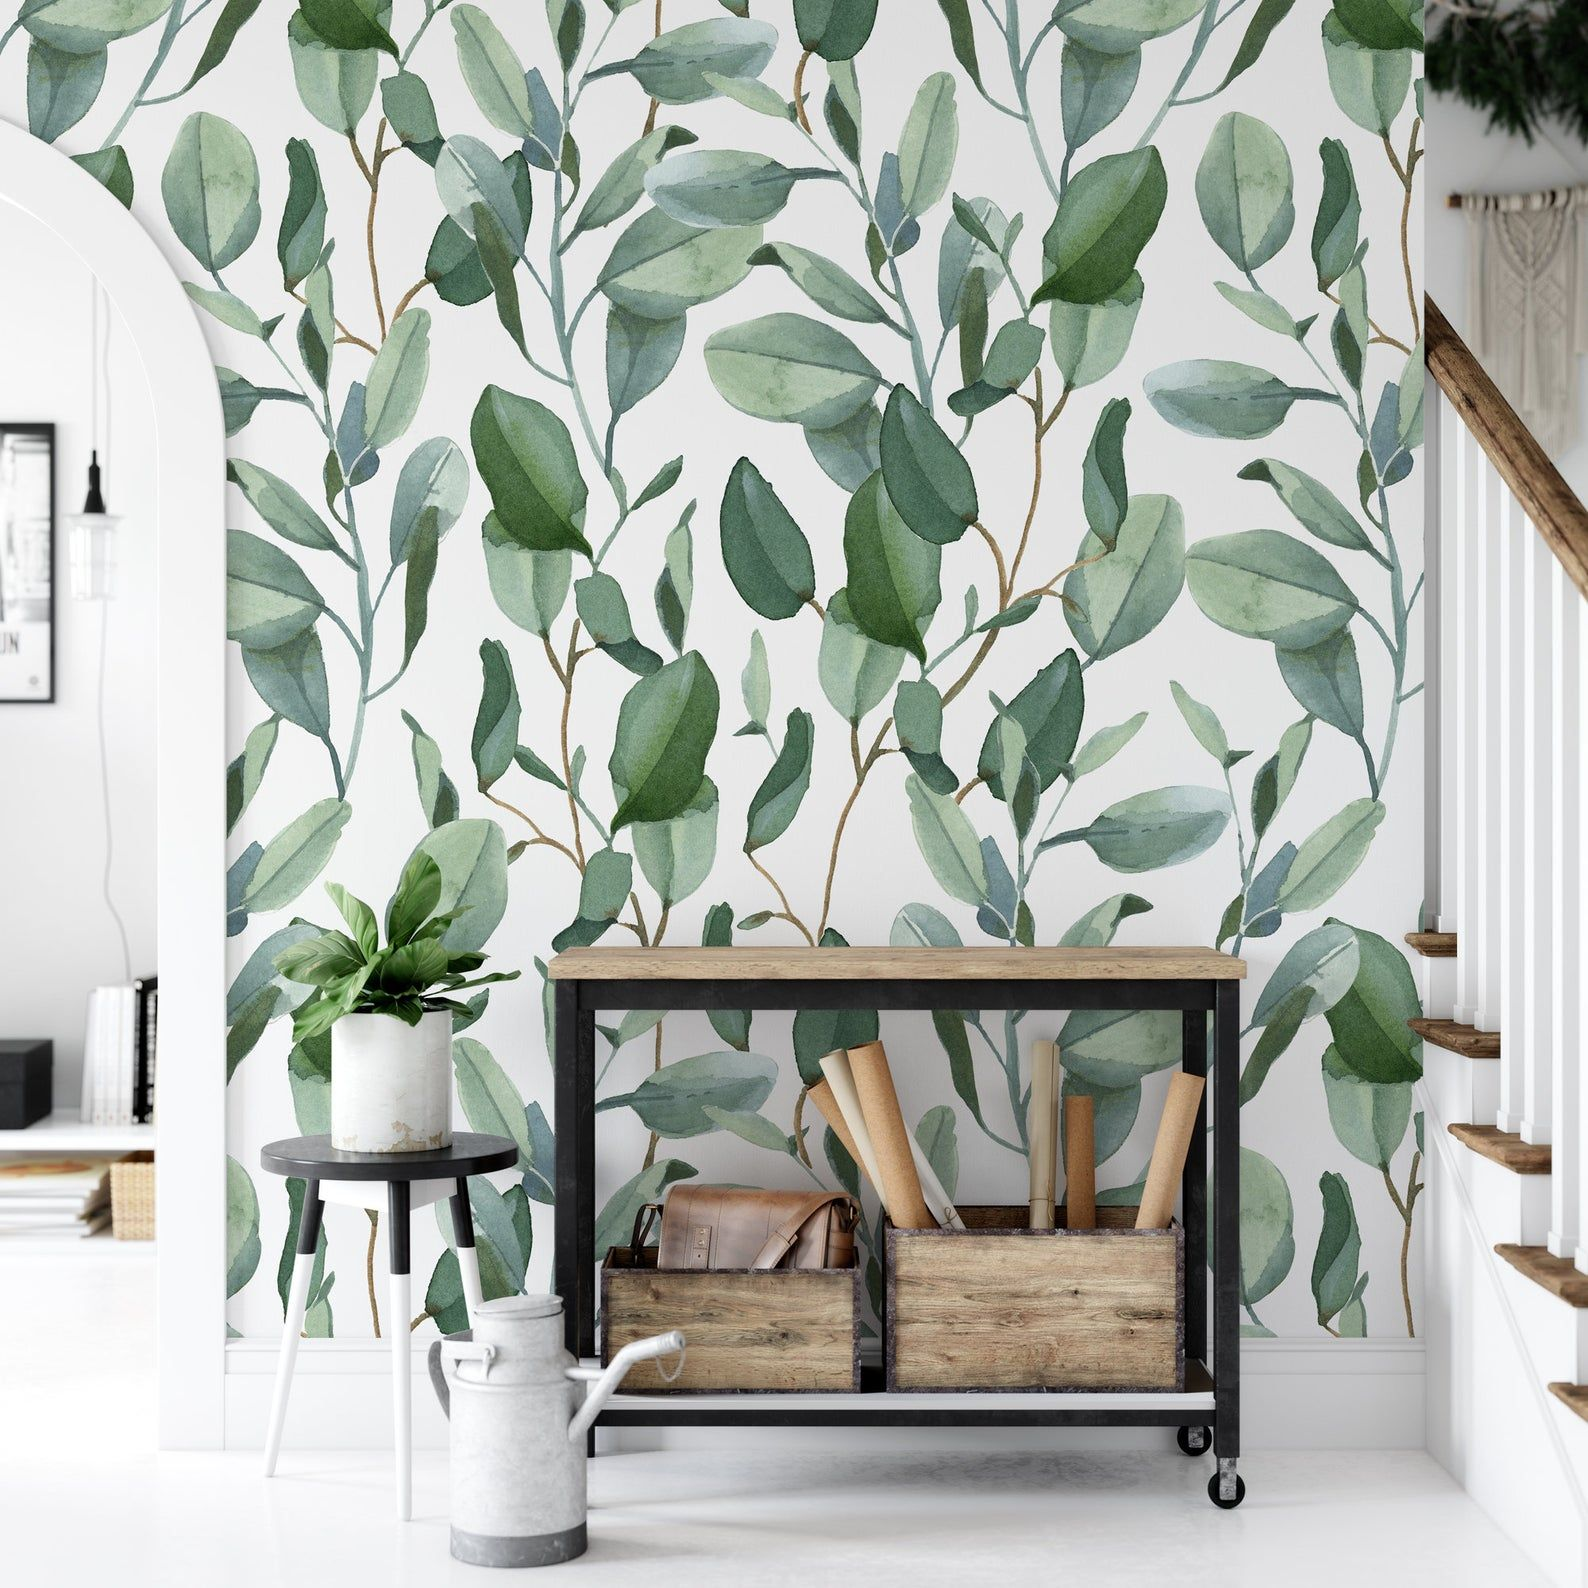 Eucalyptus Leaves Removable Wallpaper Palm Peel And Stick Etsy Removable Wallpaper Room Decor Accent Wall Bedroom